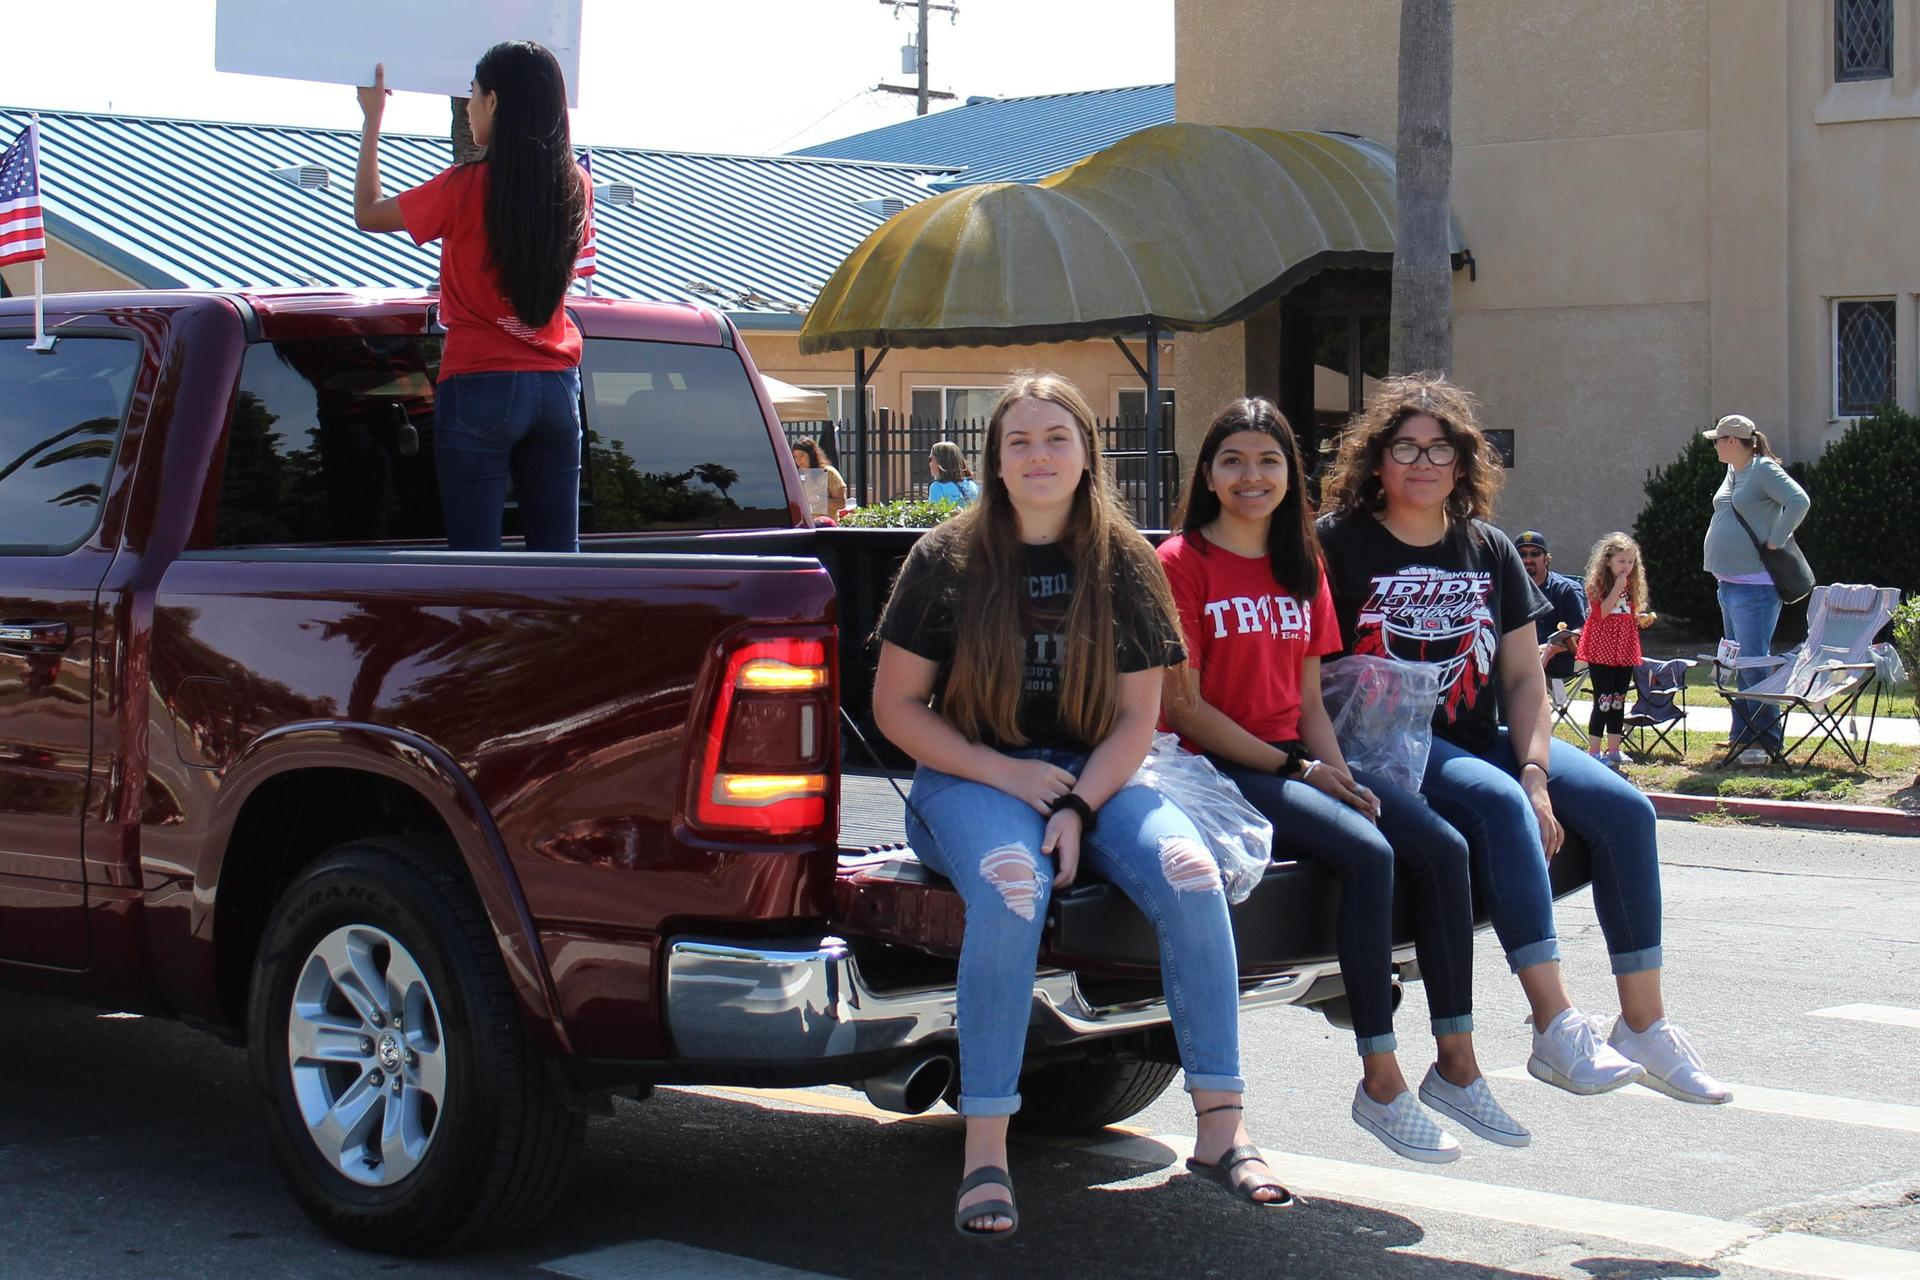 Chowchilla High School students in the parade